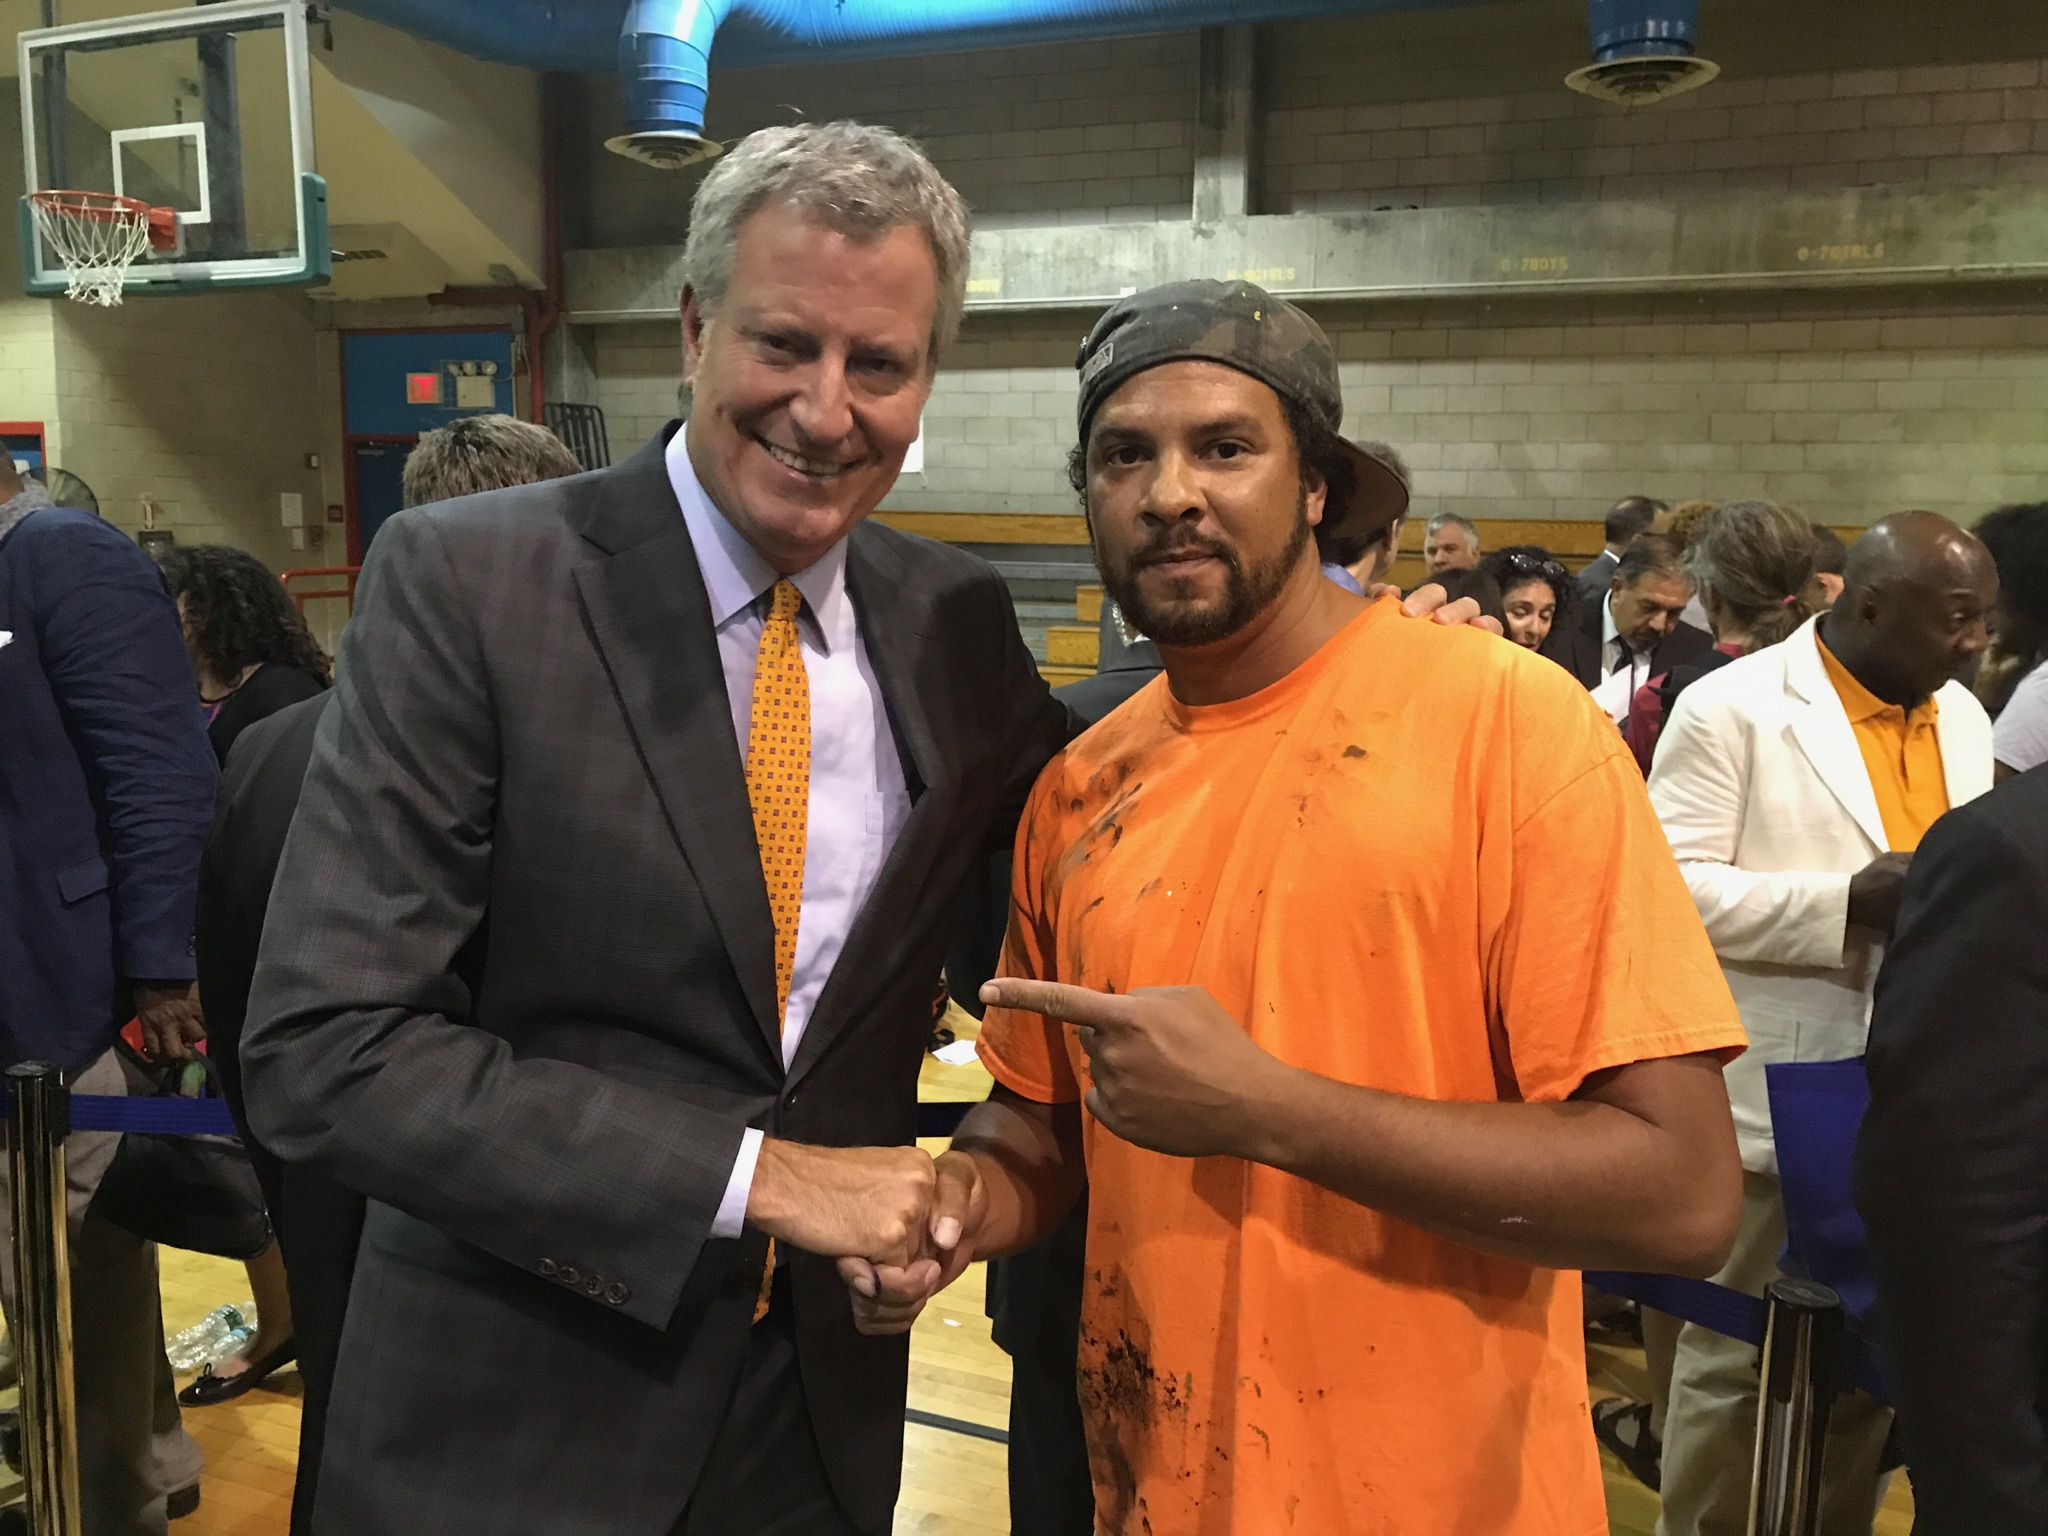 NYC Mayor De Blasio and Kyle Holbrook, In 2017 Kyle Holbrook is partnering with the Police Athletic League(PAL), NYPD and several communities to create one hundred murals that will permantantly be displayed in community centers, prefects, and after school programs throughout New York city.